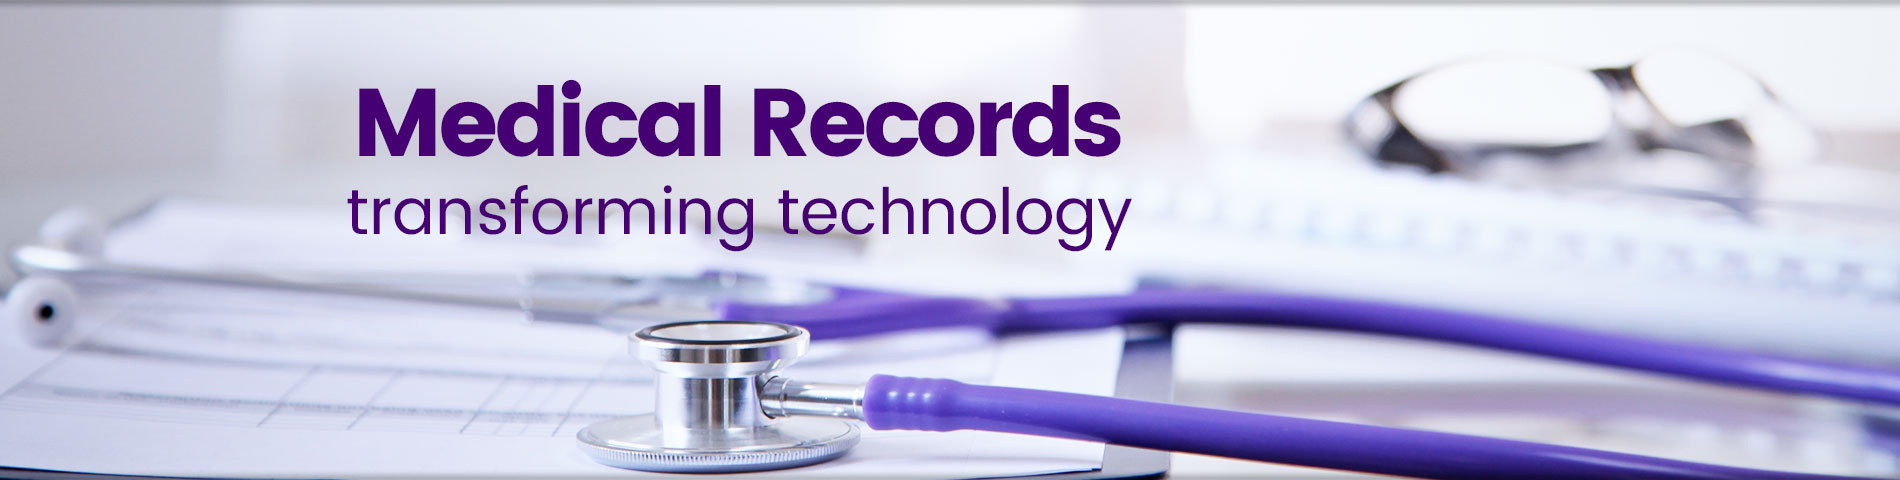 About Electronic Medical Records (EMR)